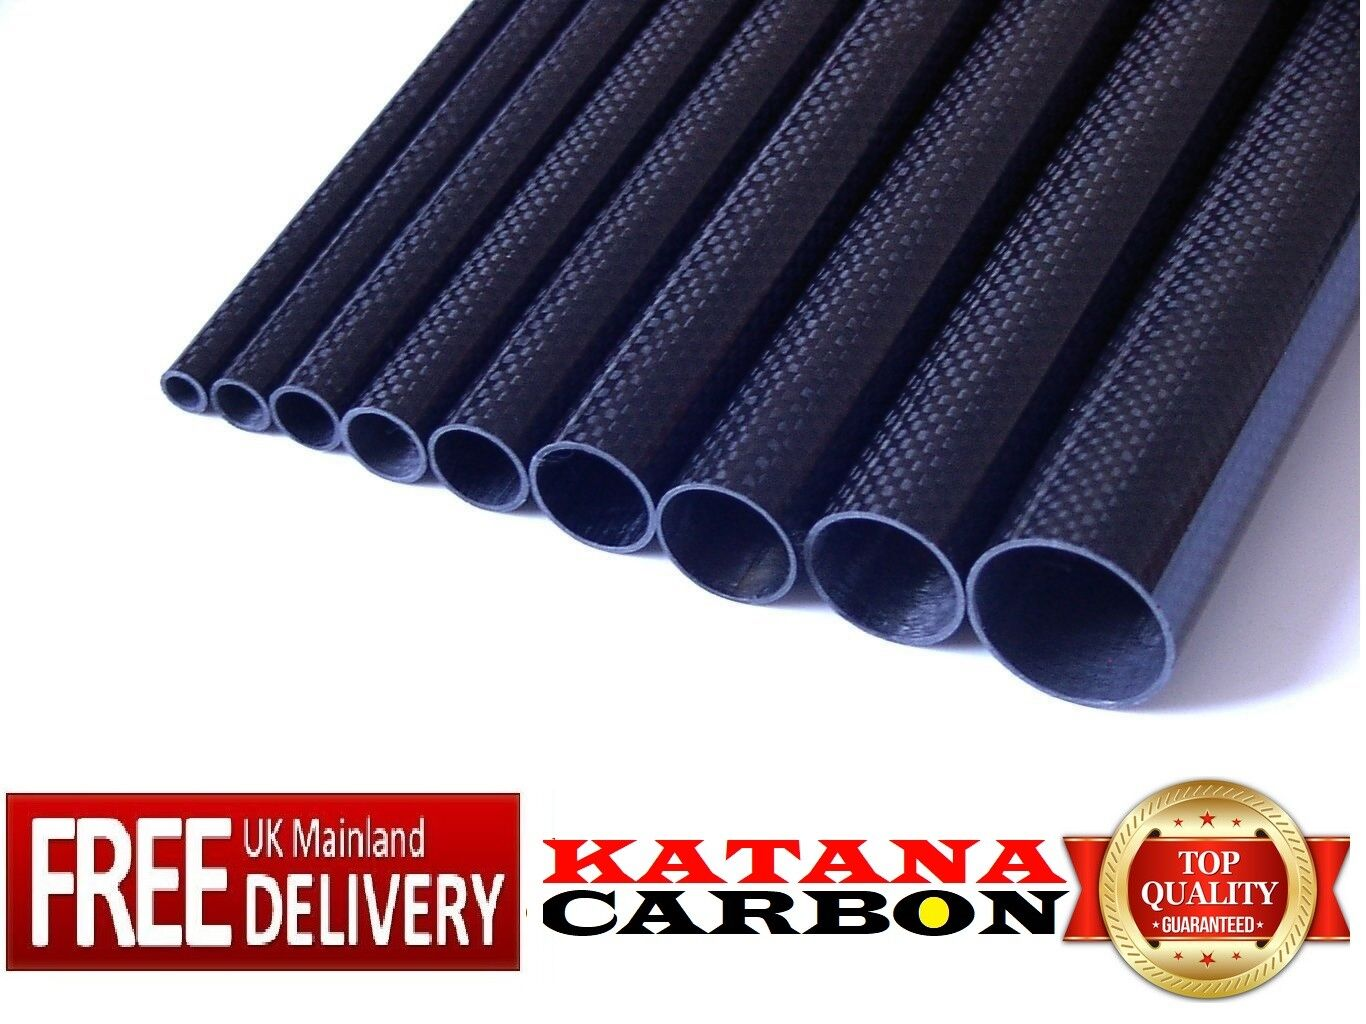 1 x x x 3k Carbon Fiber Tube OD 28mm x ID 26mm x 1000mm (1 m) (Roll Wrapped) Fibre b13014